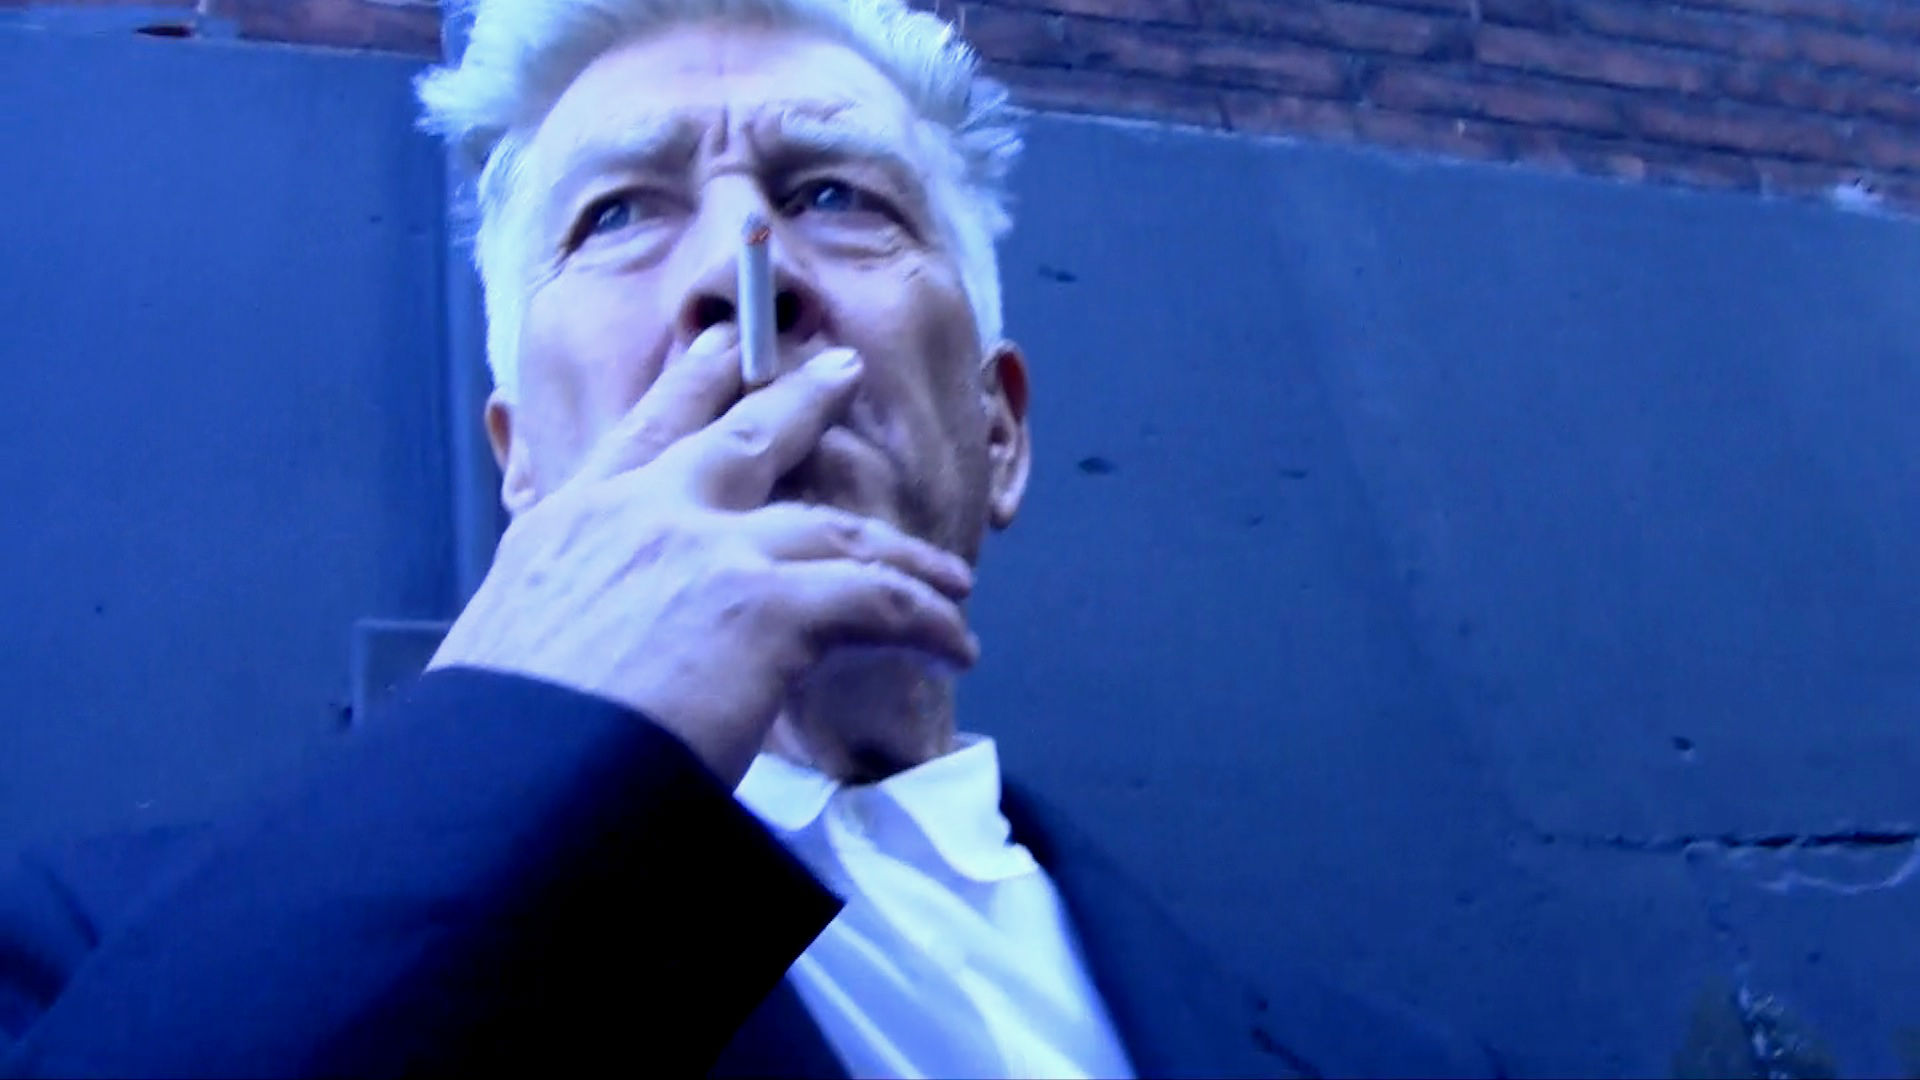 We know David Lynch as one of the most significant directors of our time whose mysteriously dark and surreal films have entered public consciousness.